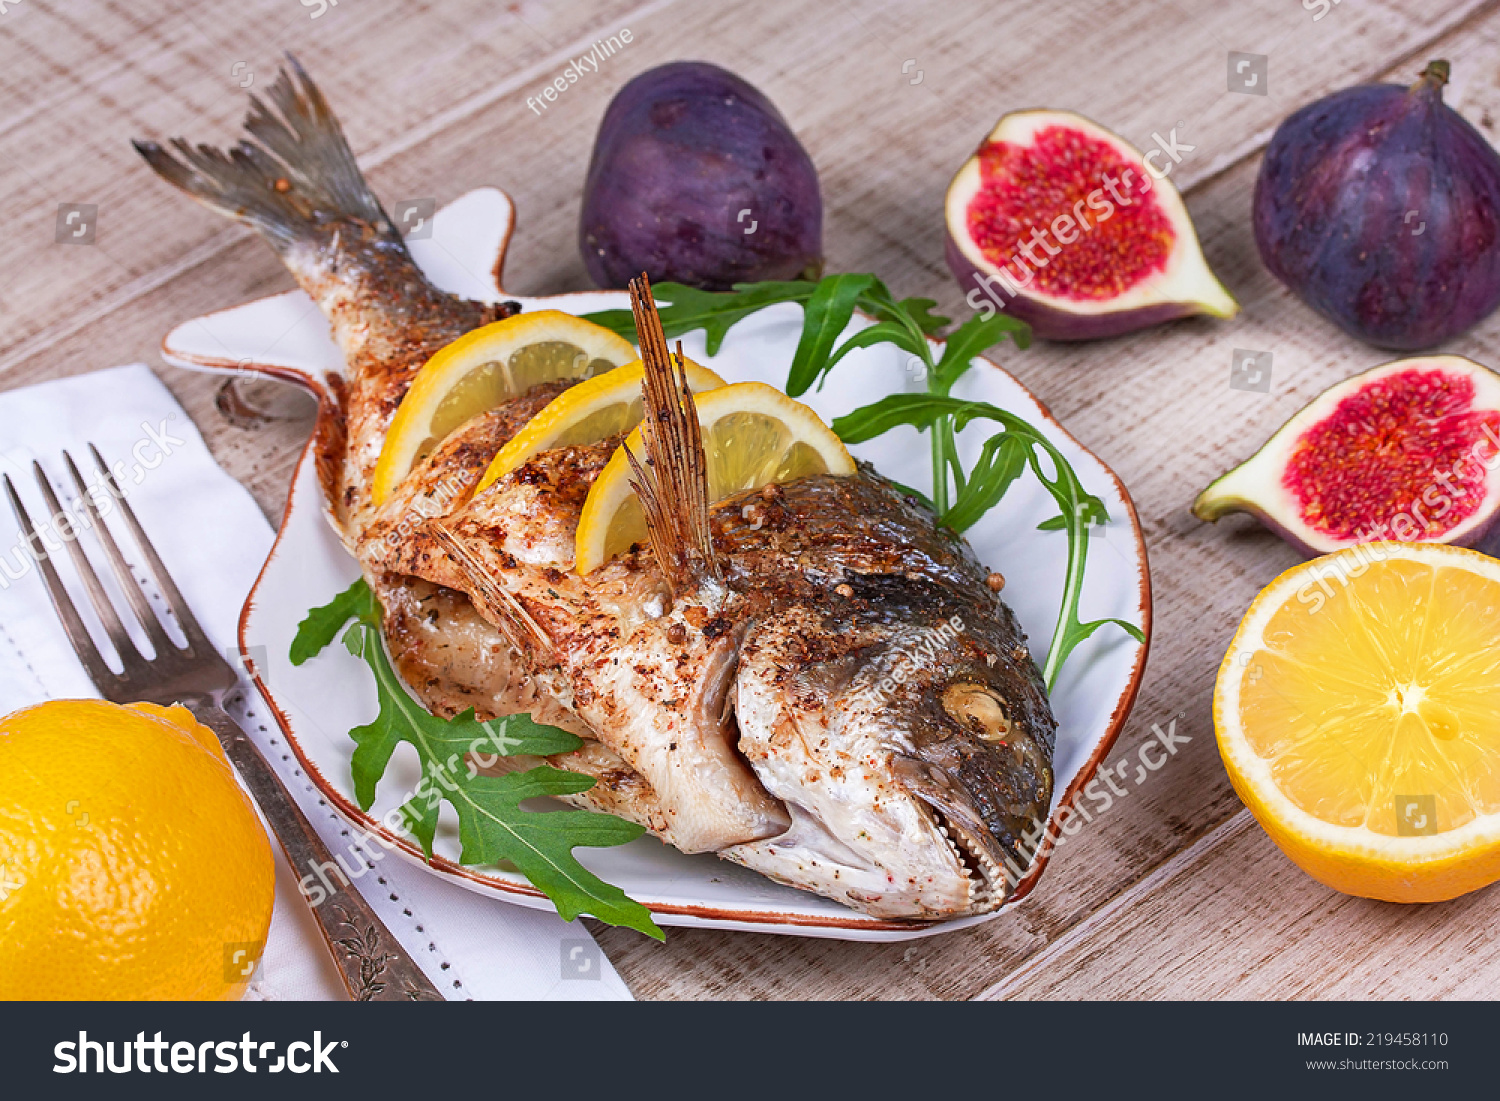 Why is Lemon Often Served With Fish and Where Did the ...